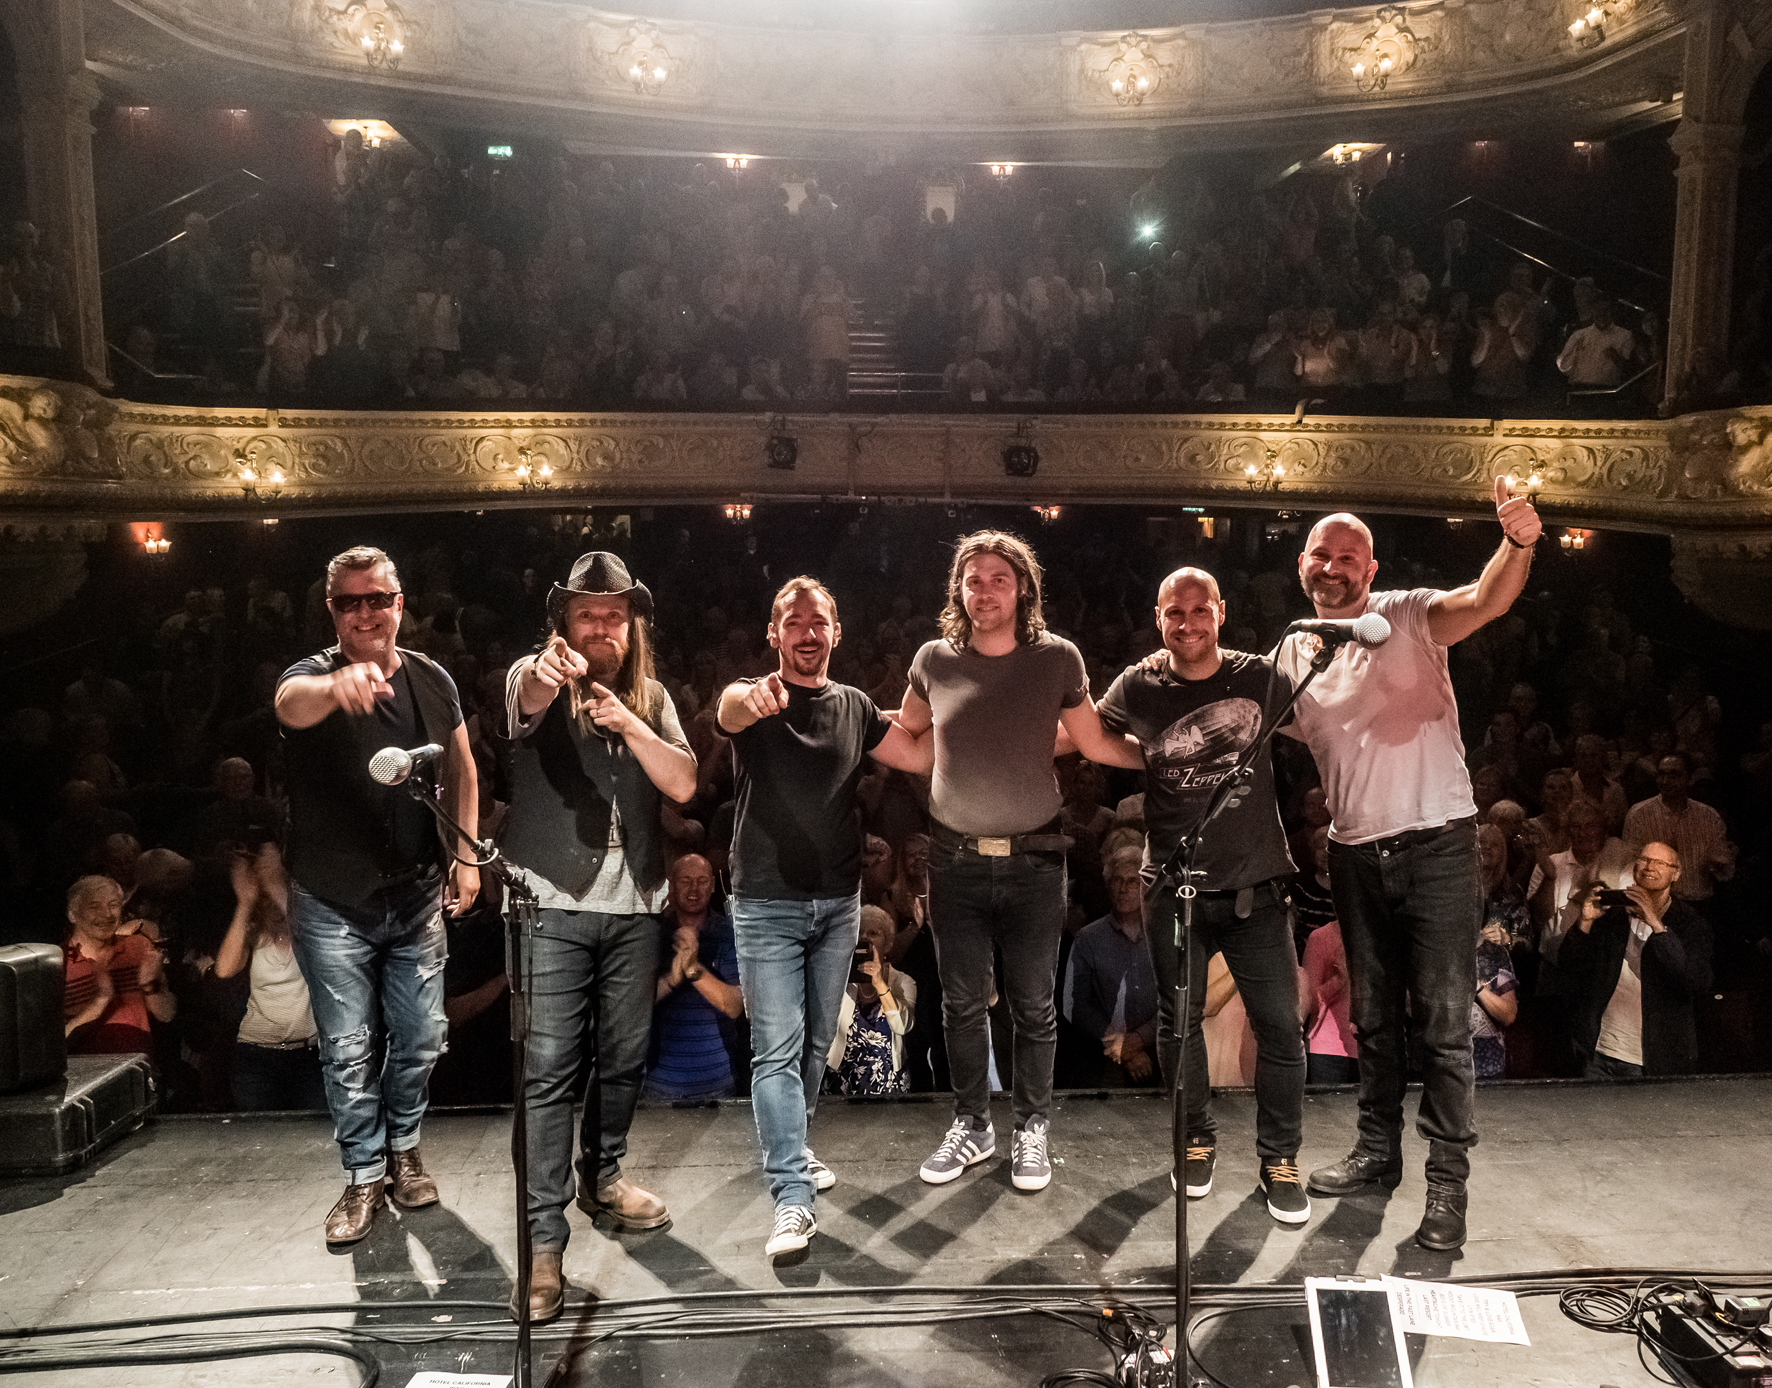 Illegal Eagles - The Worlds Number 1 Eagles Tribute Band in Concert - Coming to New Victoria Theatre Woking